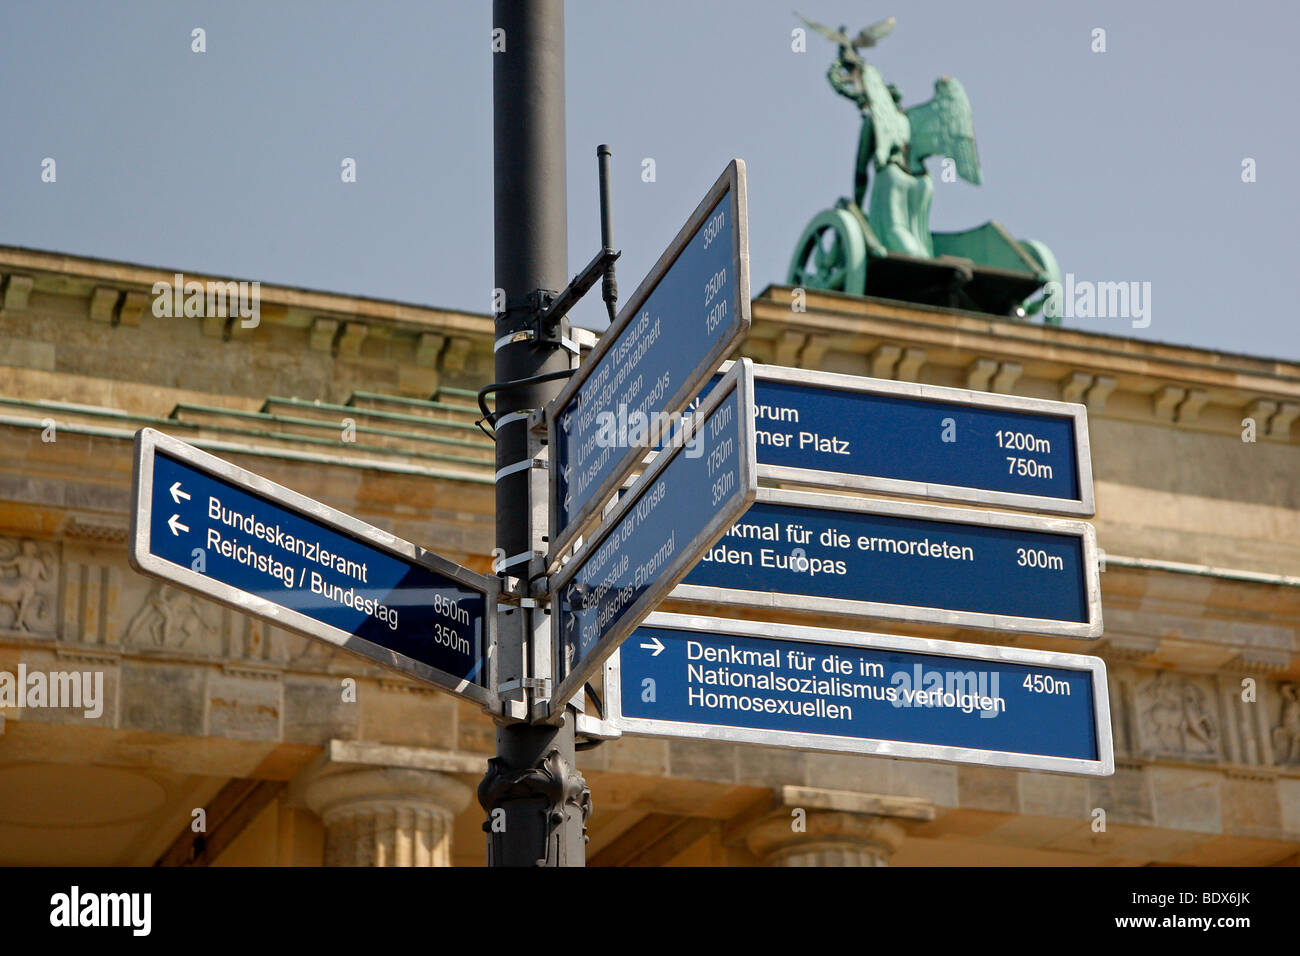 Signs at the Brandenburg Gate, Berlin, Germany, Europe - Stock Image